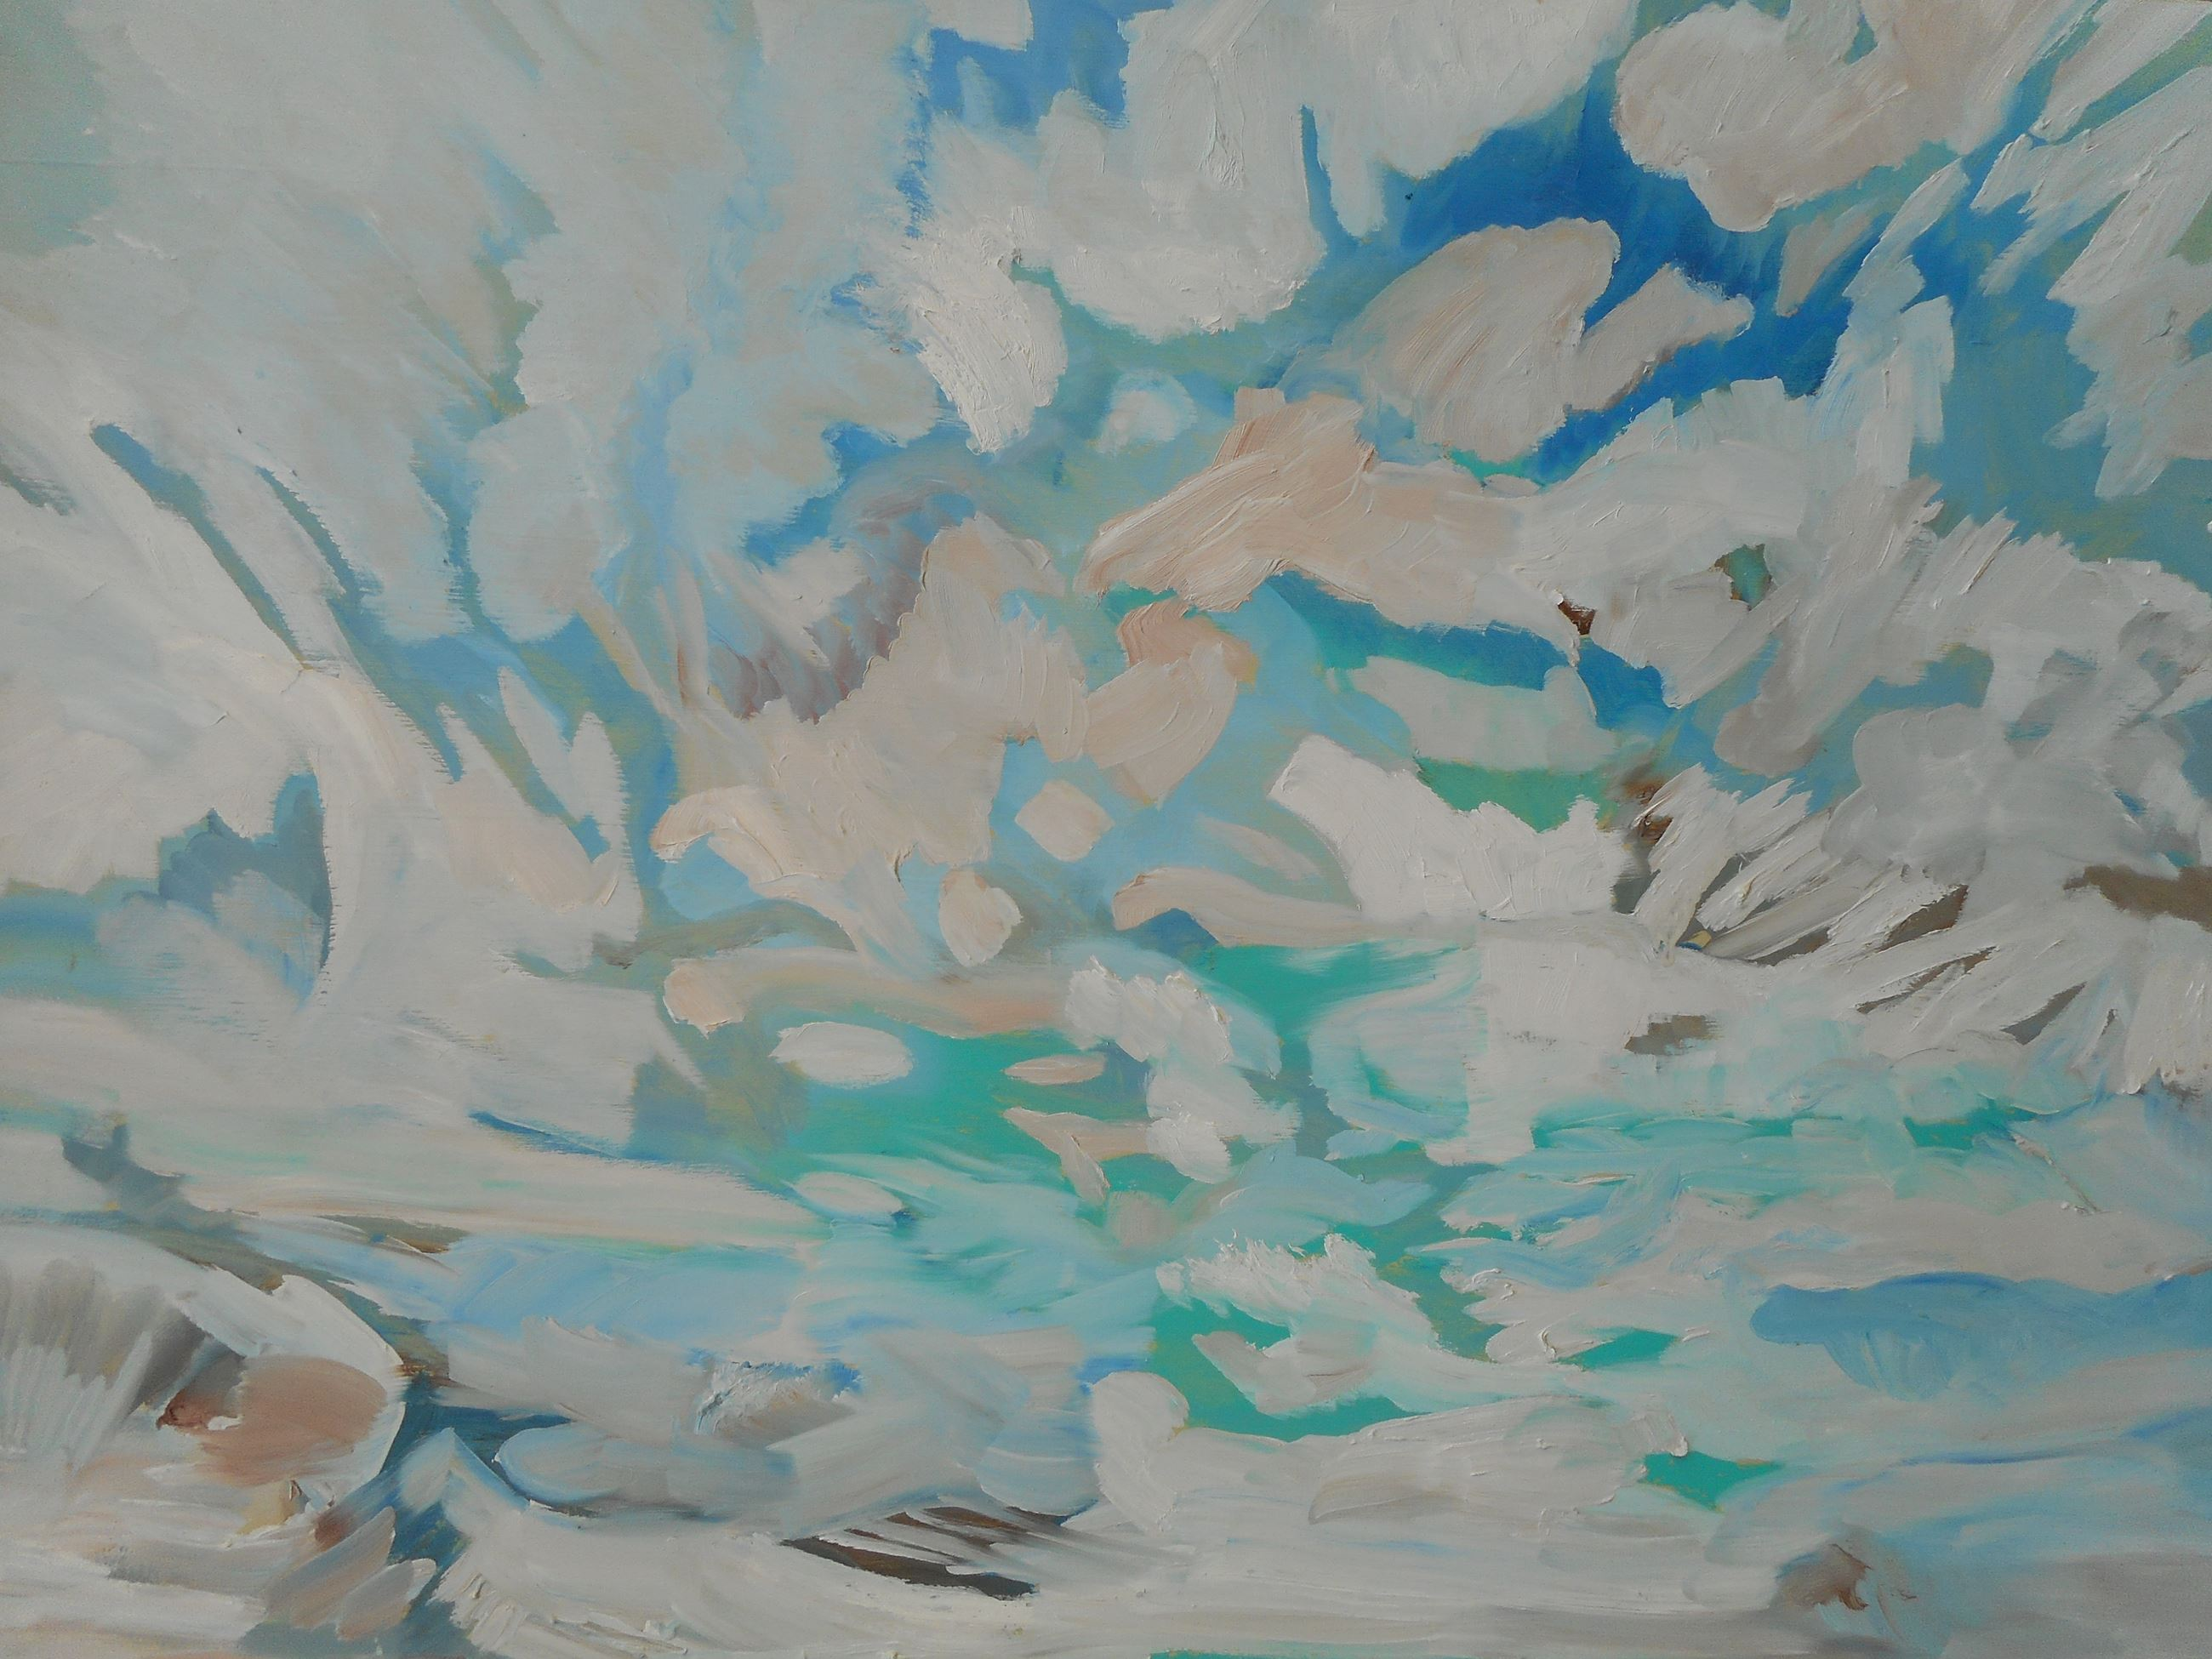 Abstract Oil Painting of the Sky and Clouds